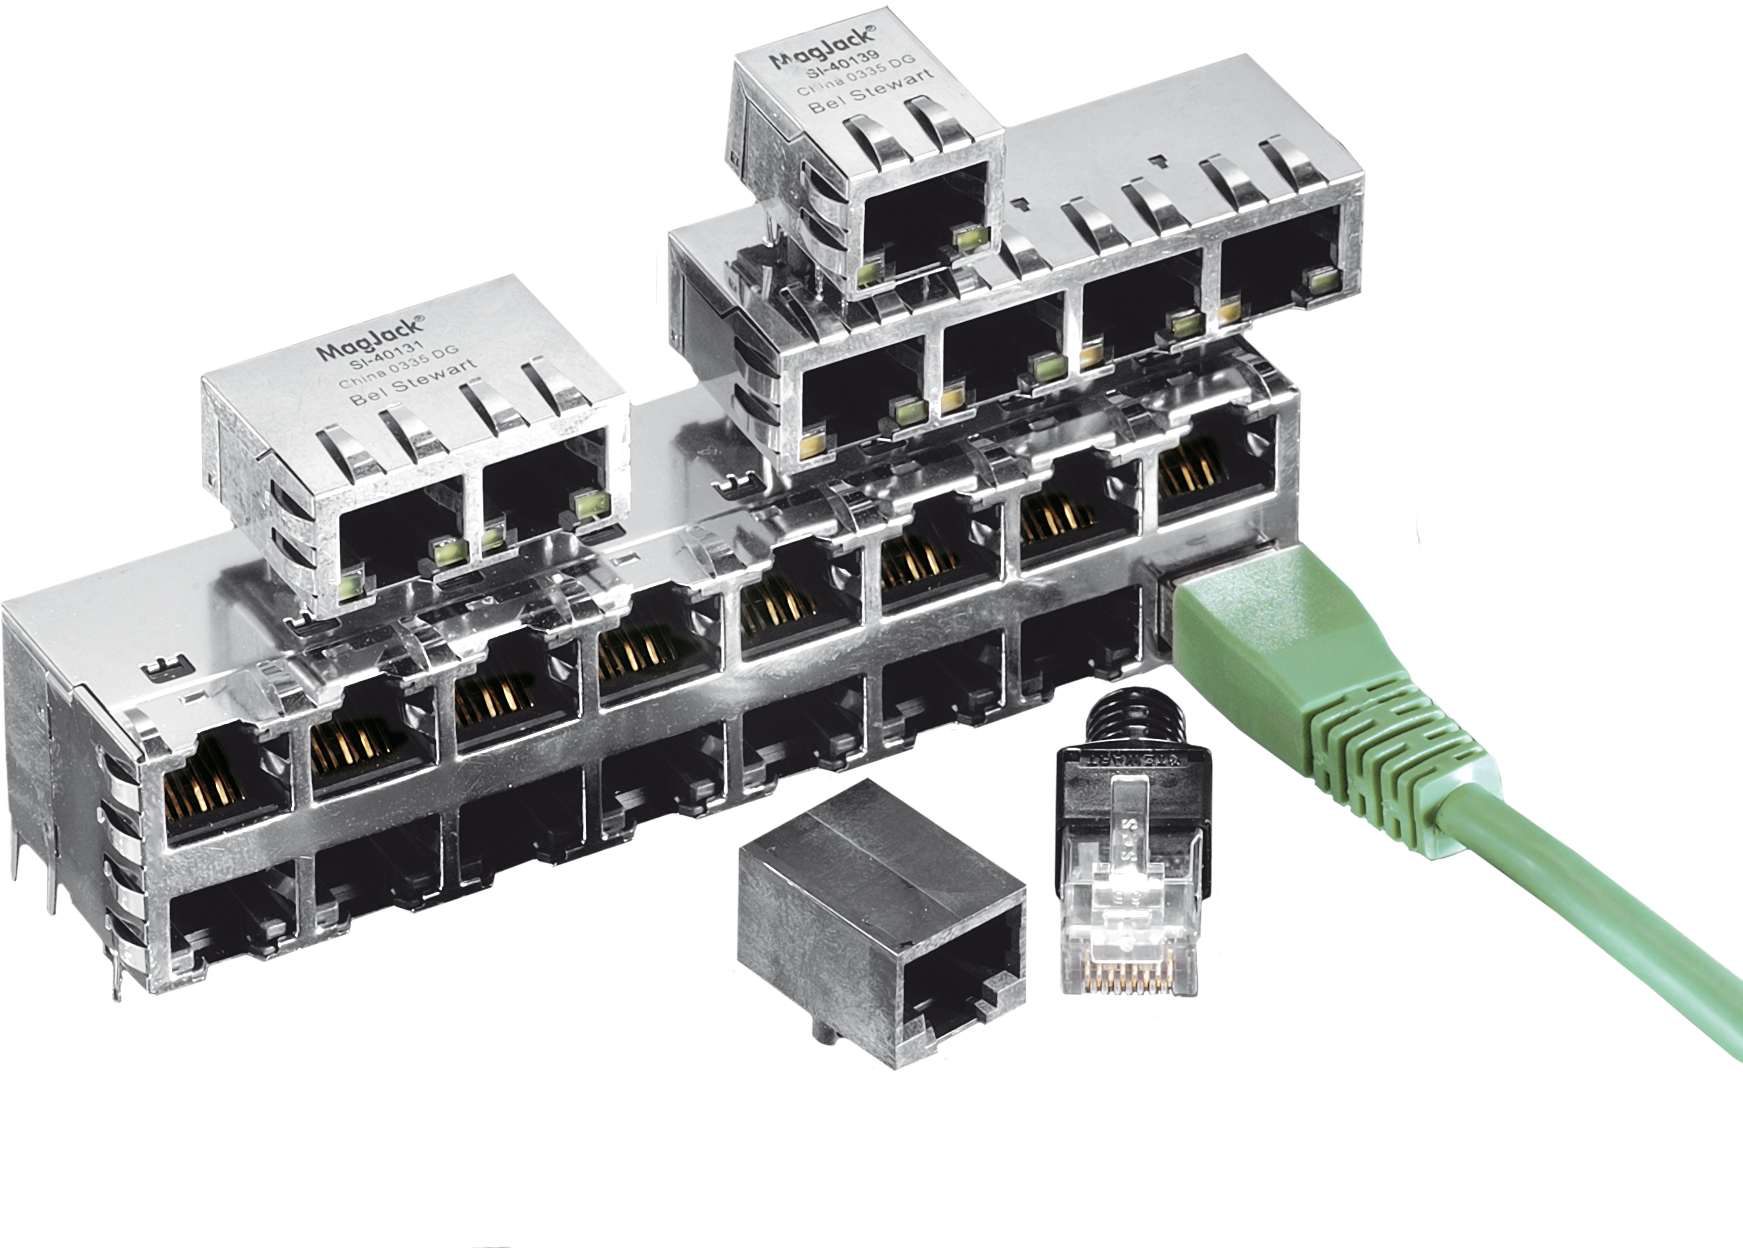 Bel Stewart Magjack Integrated Connector Modules Eve Gmbh Rj45 Cat 6 Modular Plug The Module Icm Product Line Is Fuses Premier Family Of Products For Ethernet Networking Applications